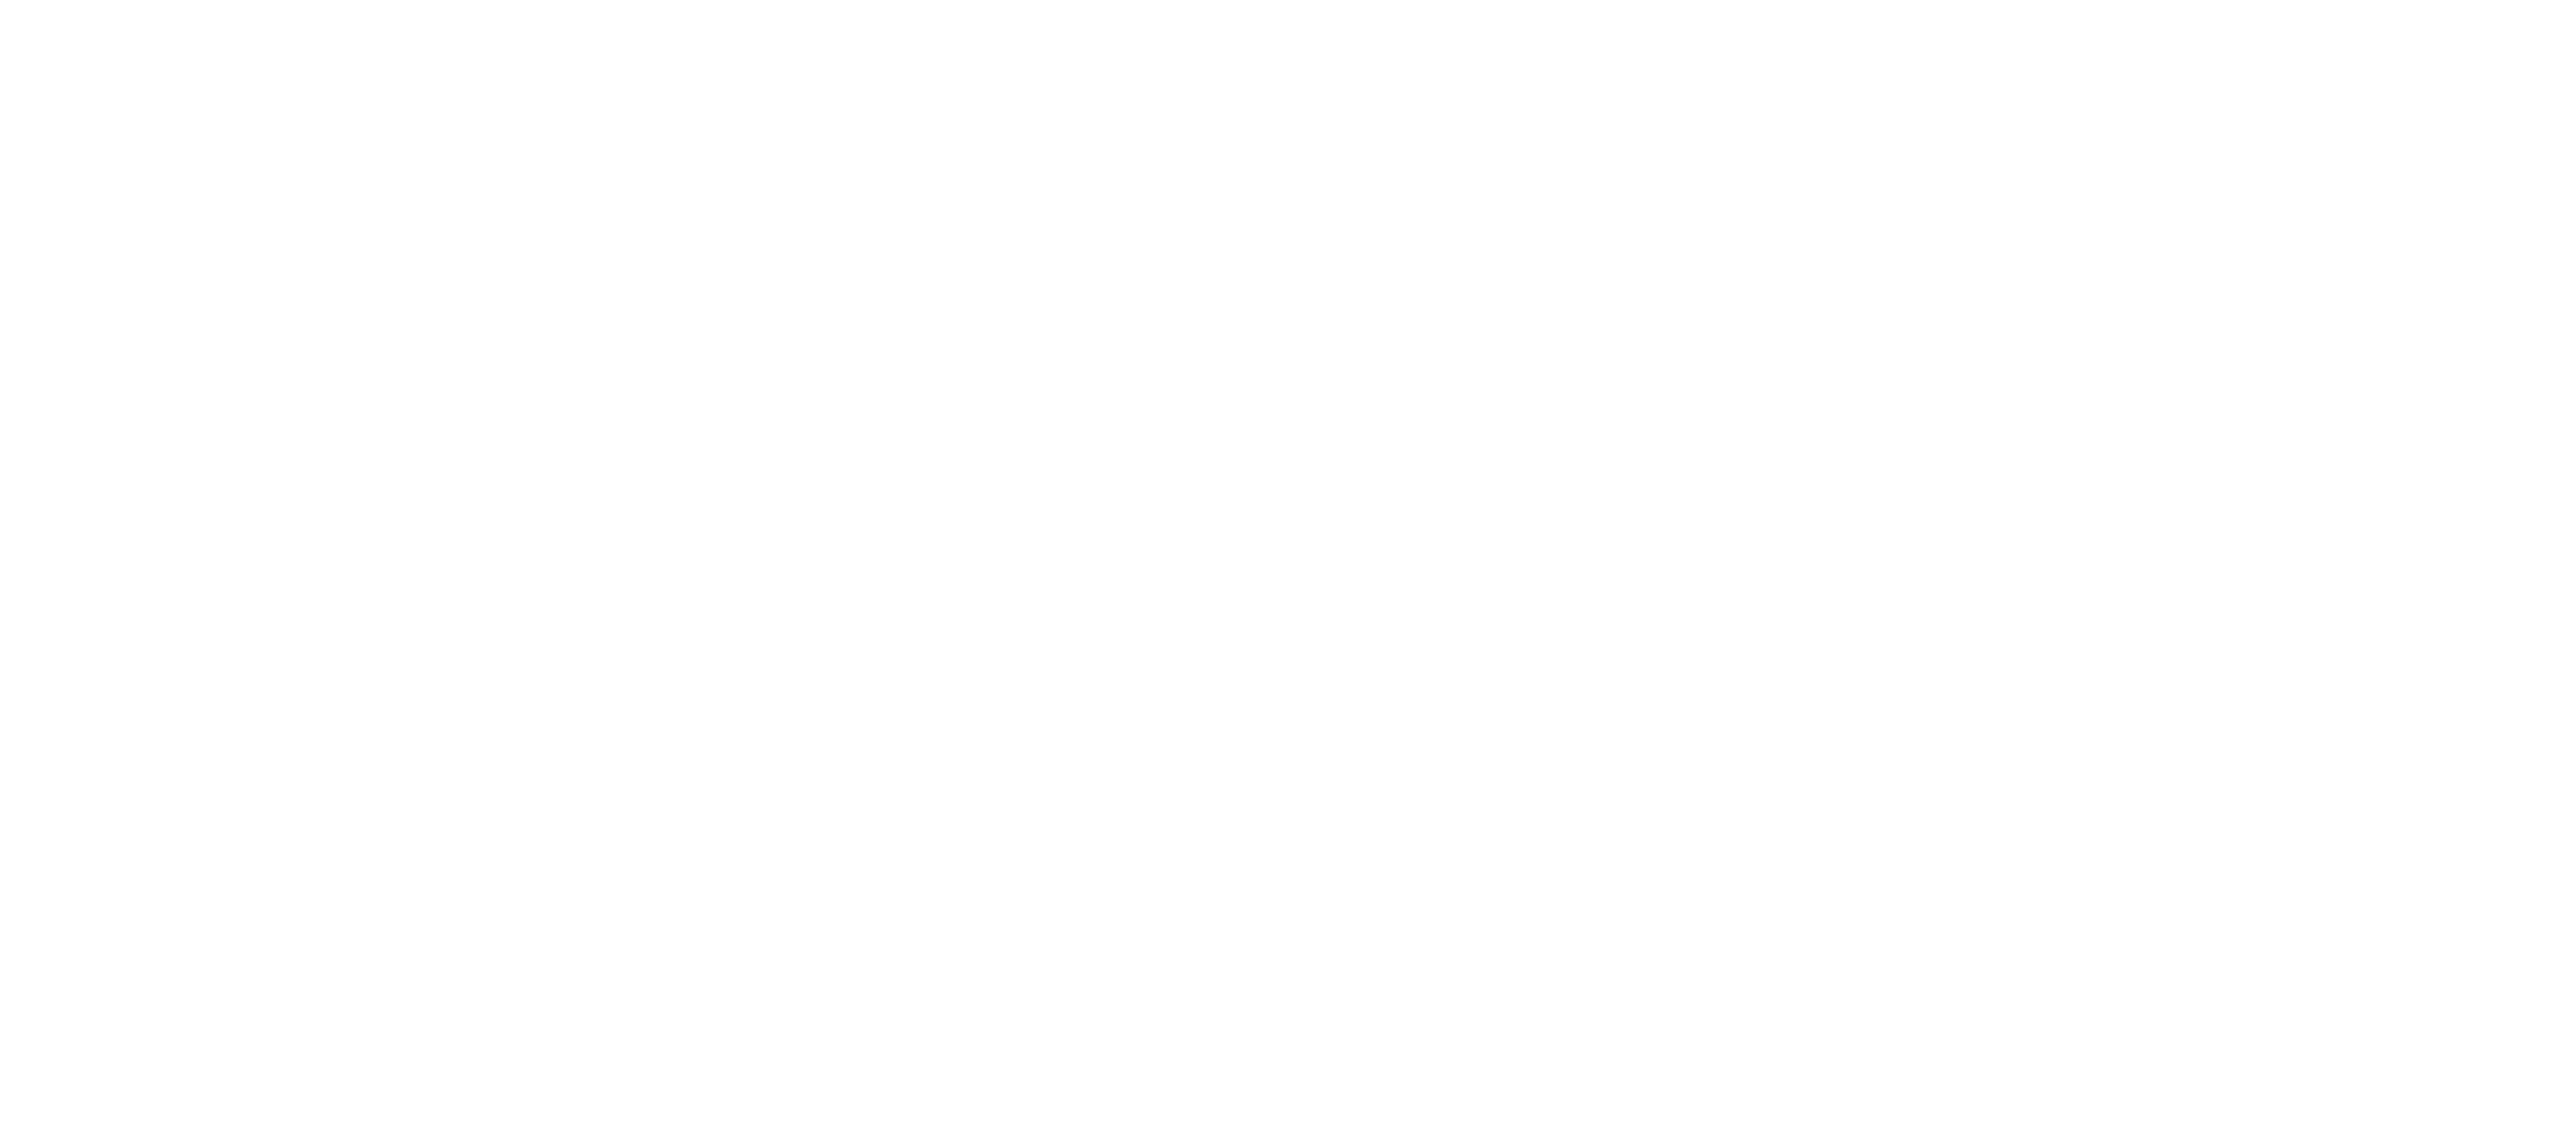 2020 prin BLANCO LOGO DR CARRILLO